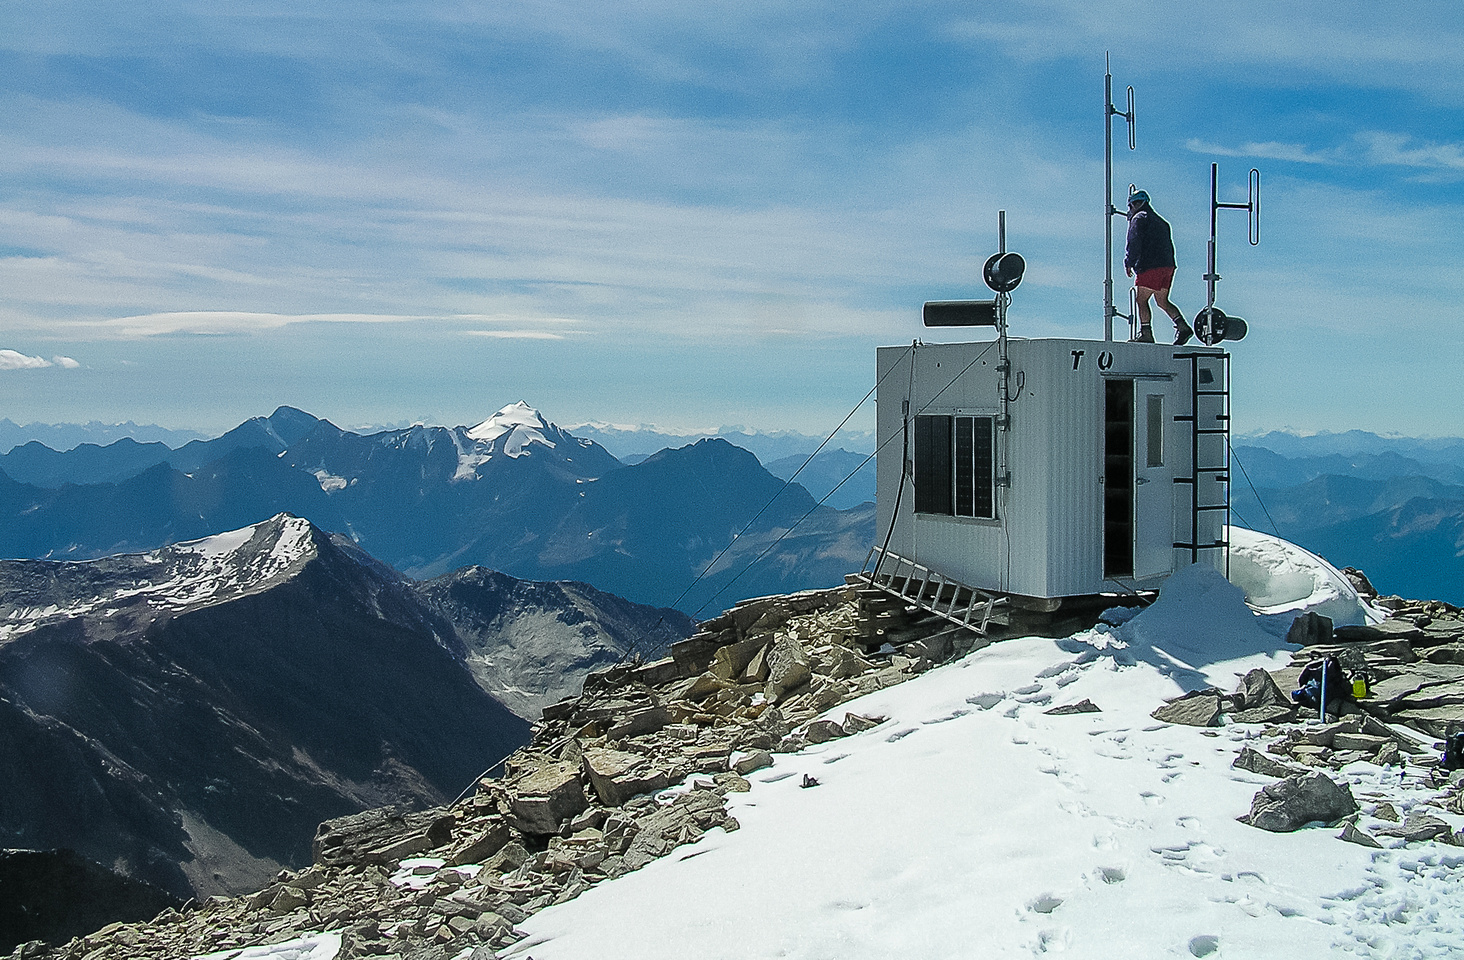 The summit shack that holds the register among other things.